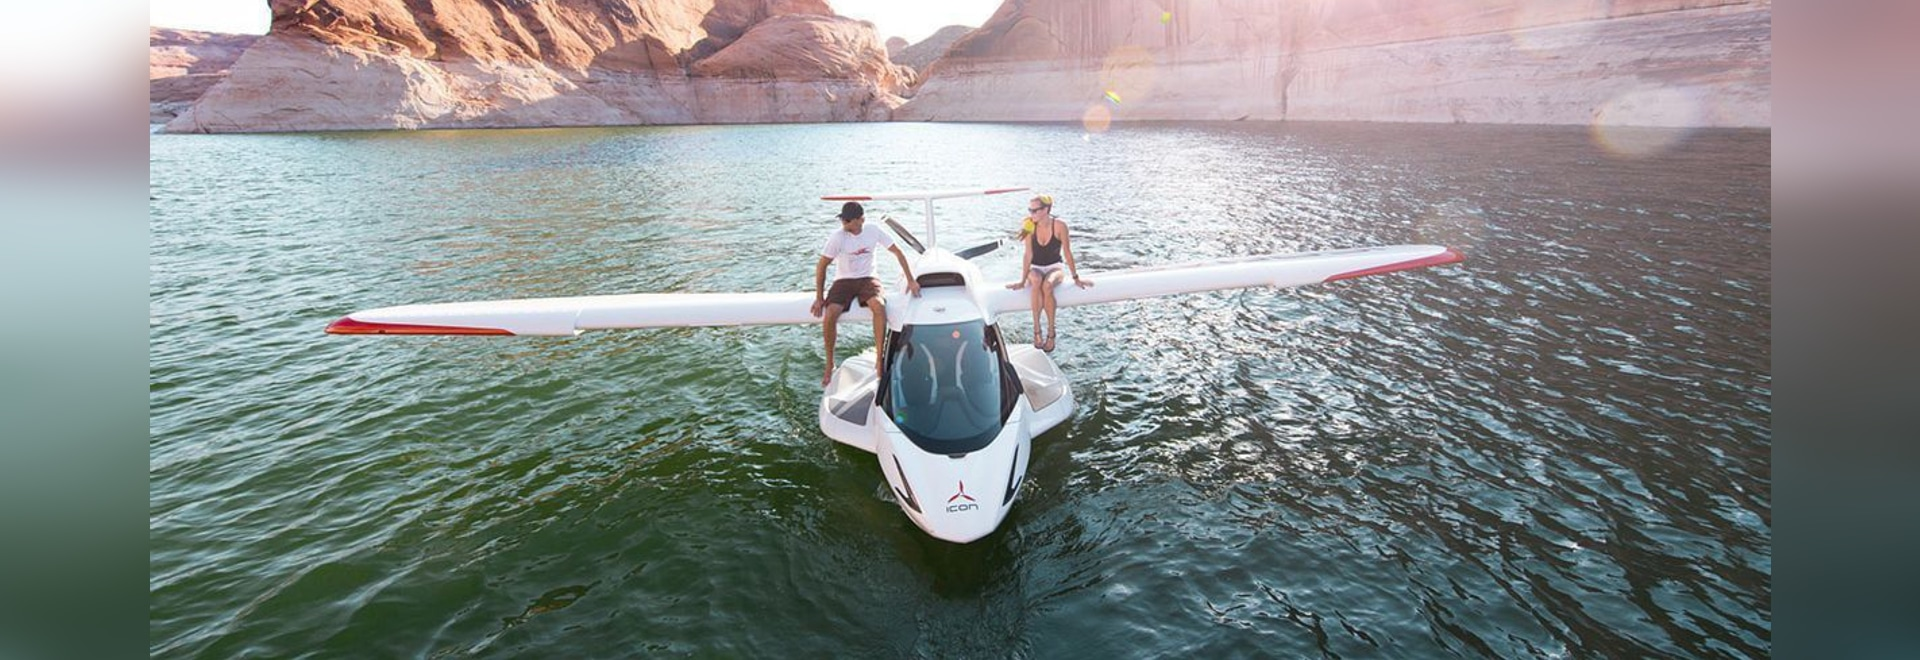 Icon Aircraft is launching a fractional ownership program for the A5 light-sport amphibian called Icon Fleet Access.